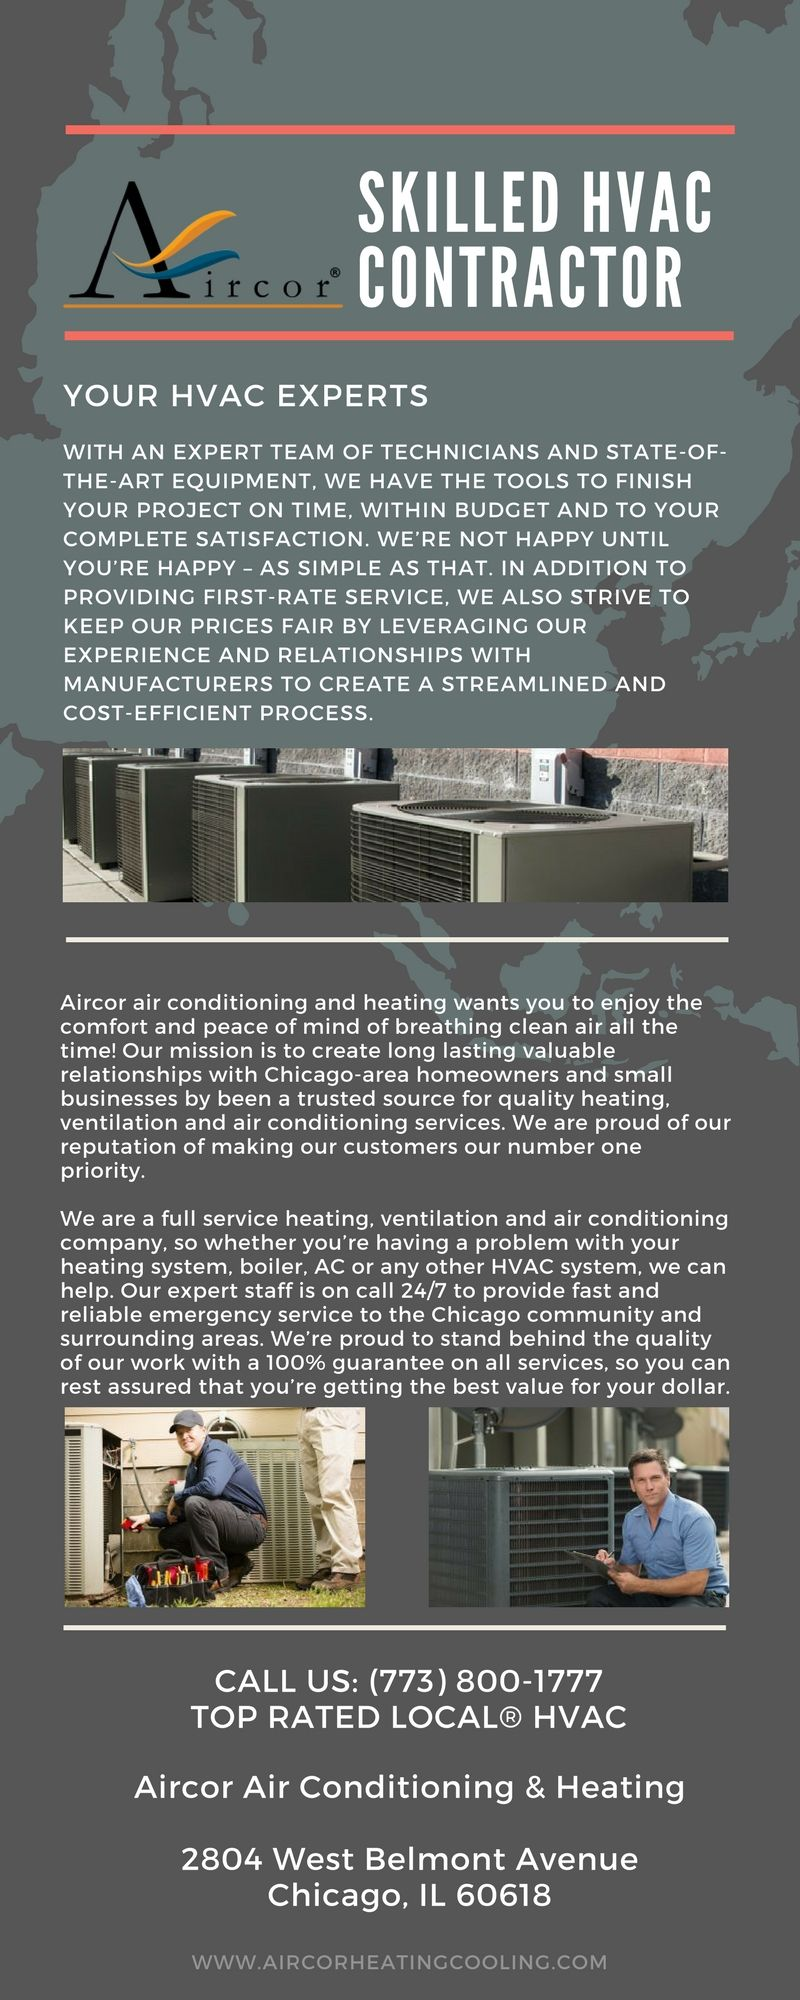 Aircor Chicago S Premier Air Conditioning And Heating Hvac